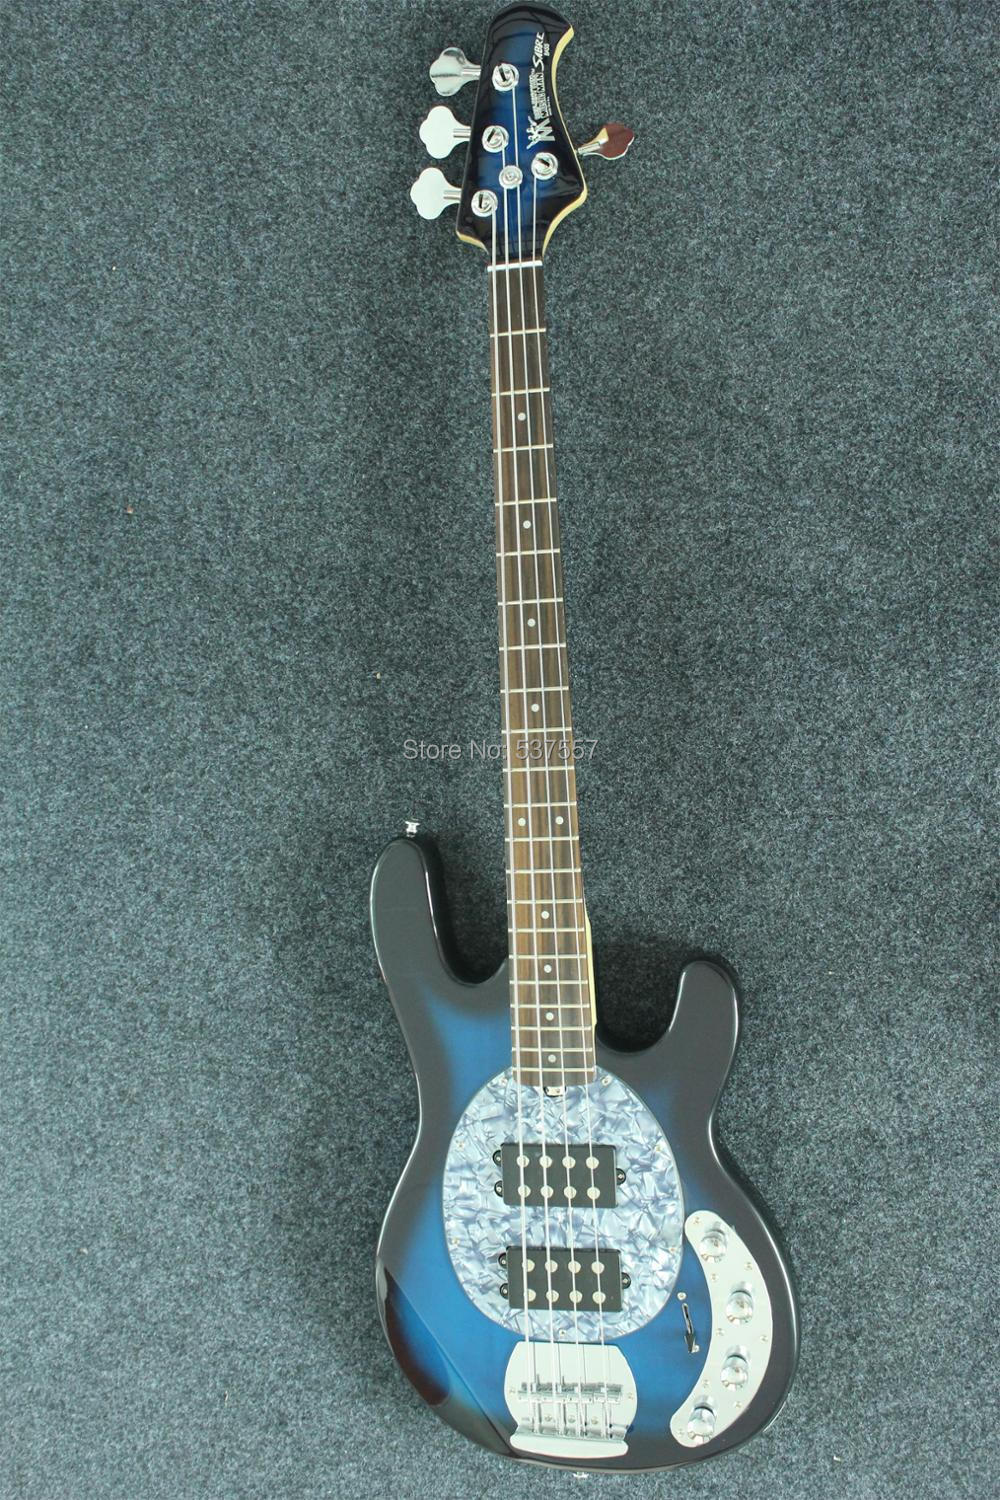 free shipping of brand new 2018 musicman sabre bass 4 strings 5 strings electric guitar. Black Bedroom Furniture Sets. Home Design Ideas